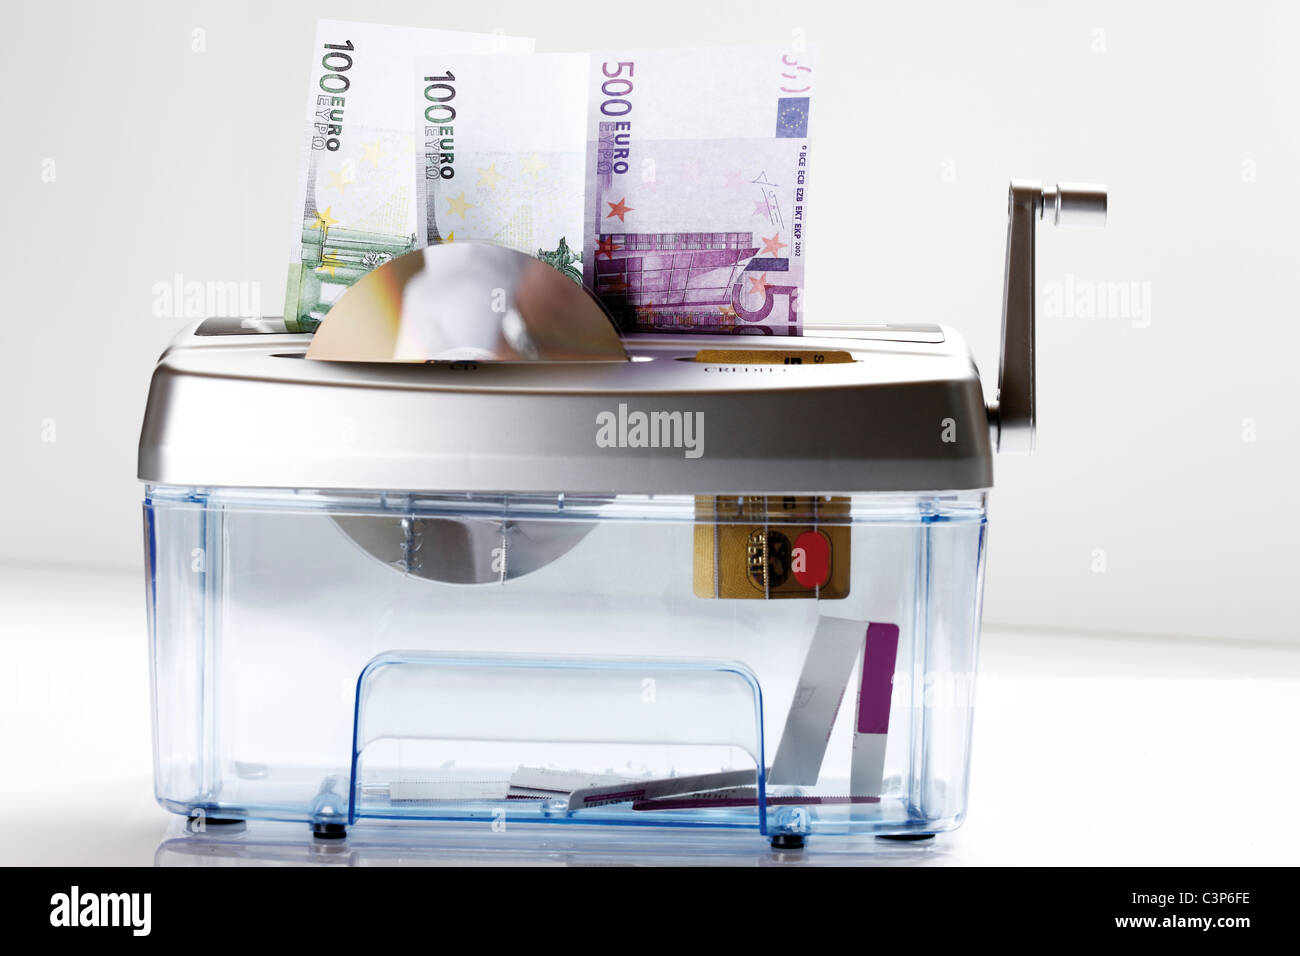 Euro notes, CD and EC-card in shredder - Stock Image